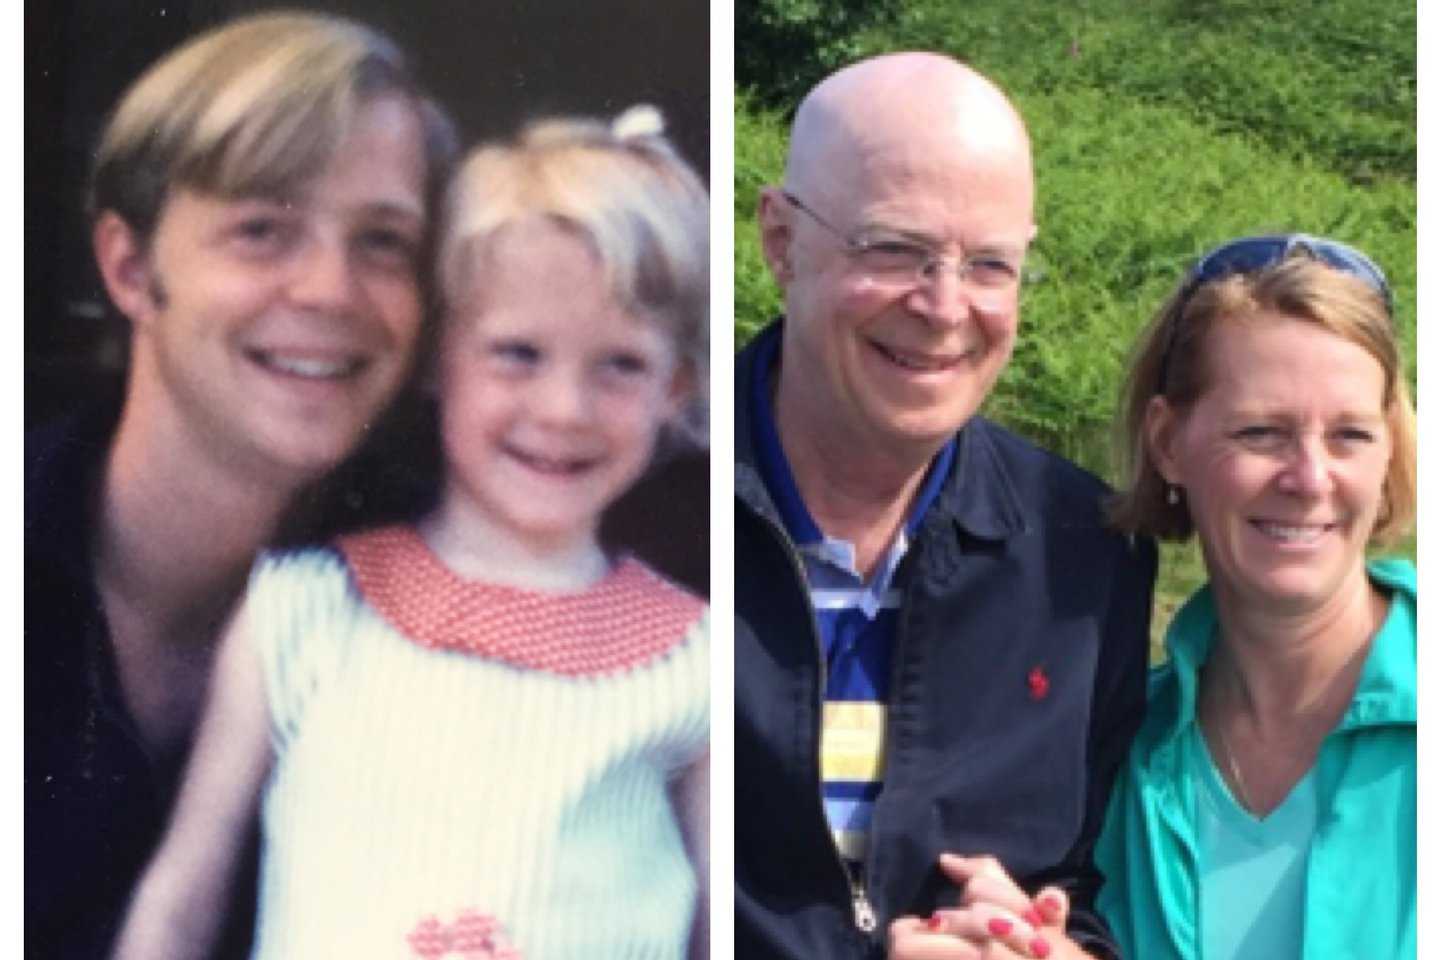 Photo of Richard Harms as a young man and father with his daughter (left), and more recently with his wife (right).